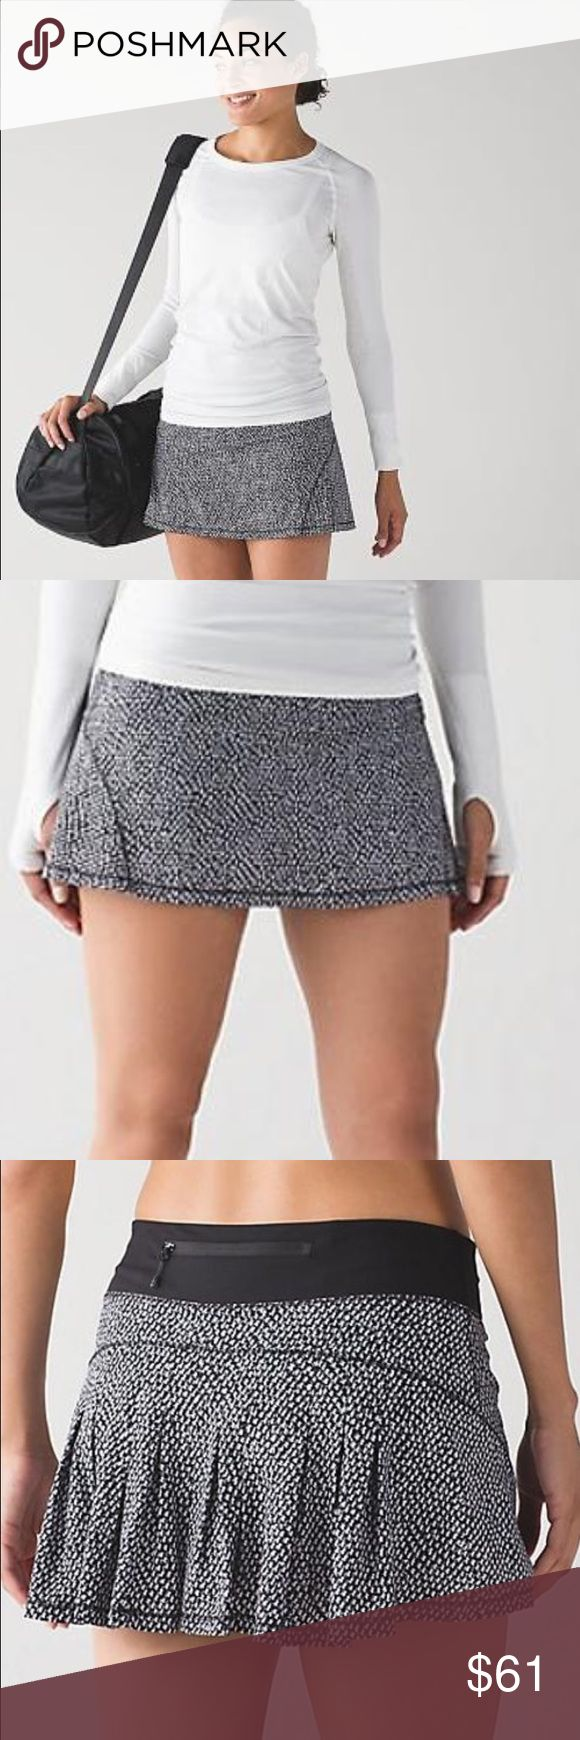 Lululemon Circuit Breaker Skirt *R Lululemon Circuit Breaker Skirt *R    Hit the trails or the court in this versatile slim-fitting skirt. Designed to feel light and keep you covered, Swift Ultra fabric is sweat wicking. Extra grip at the hem, added Lycra(TM) fiber ensures great shape. lululemon athletica Skirts Mini